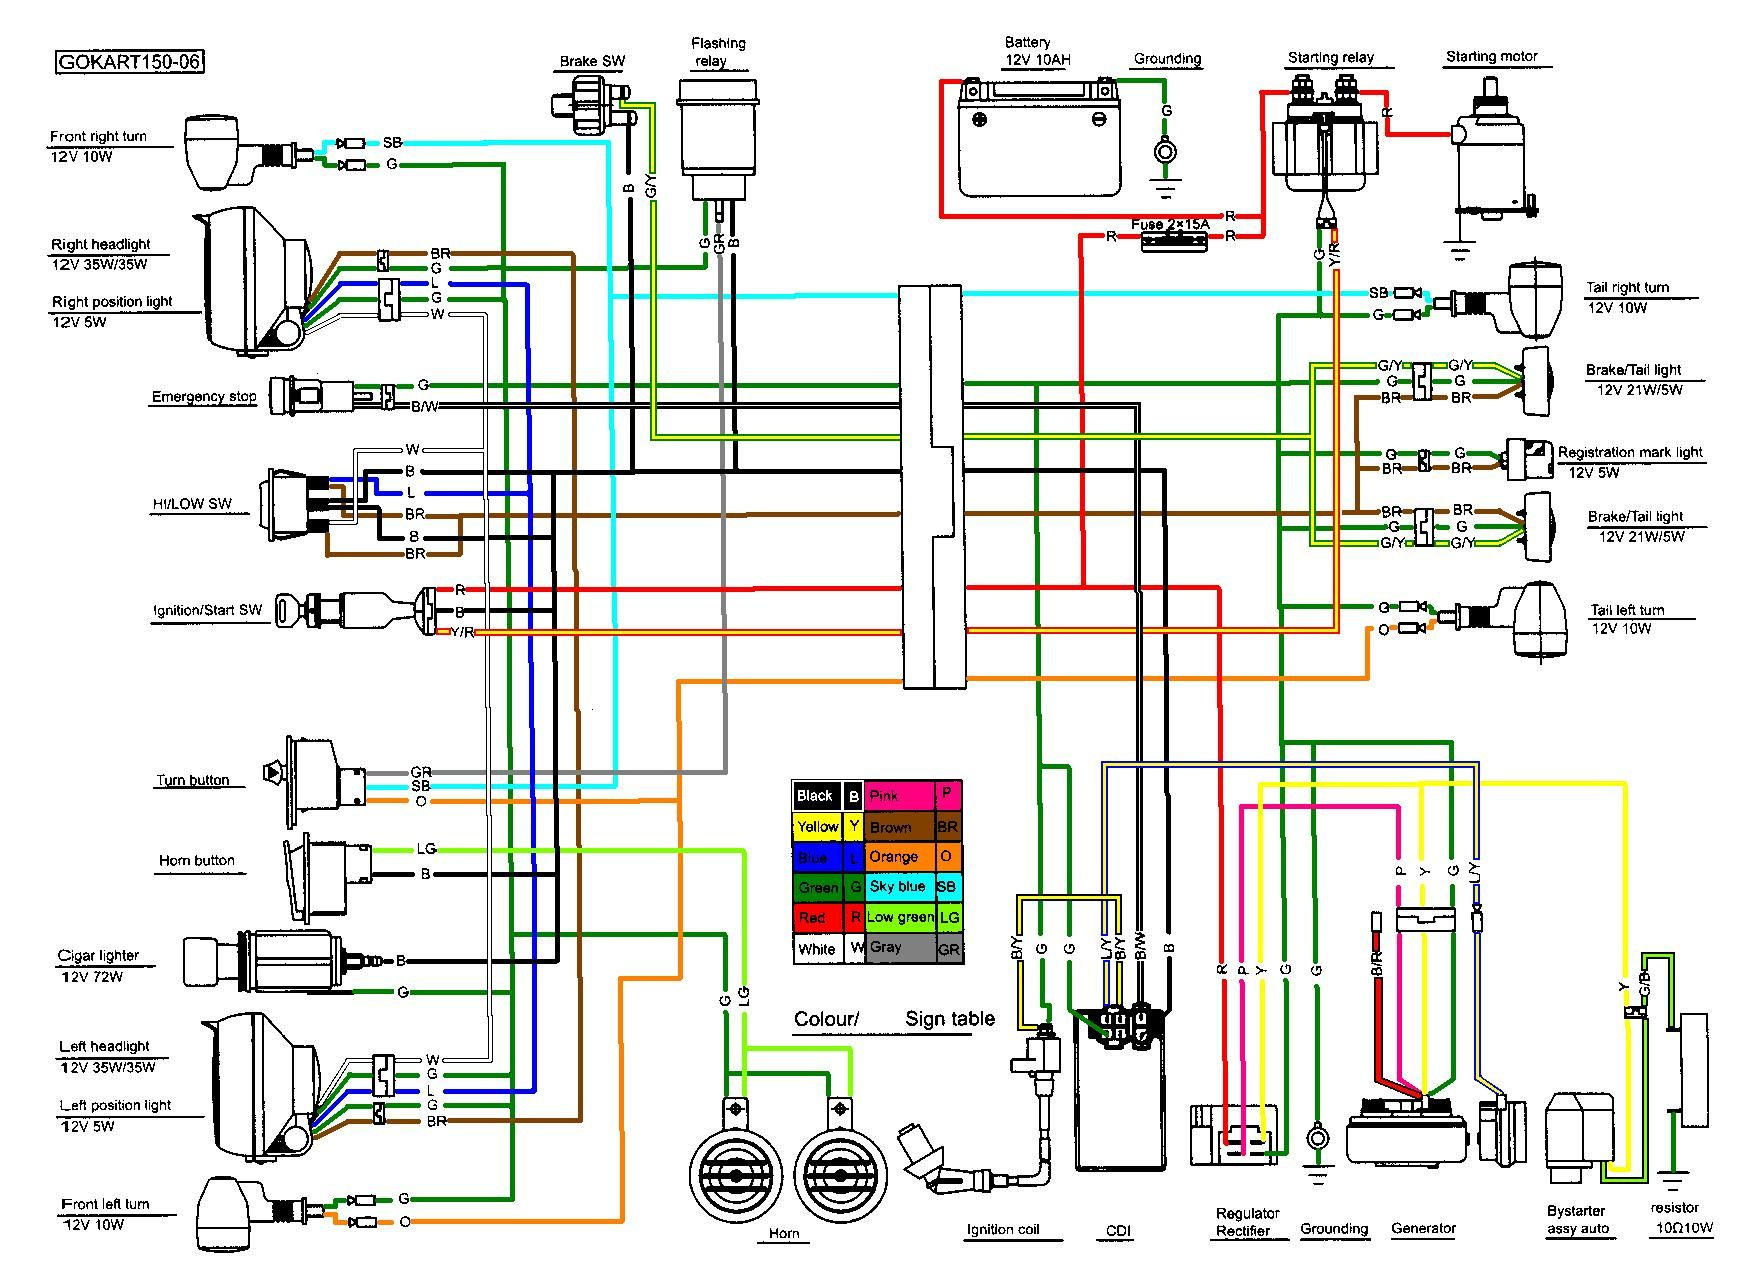 Wiring Diagram Gy6 Schematic Download GY6 Ignition Throughout 150Cc   Scooter wiring diagram